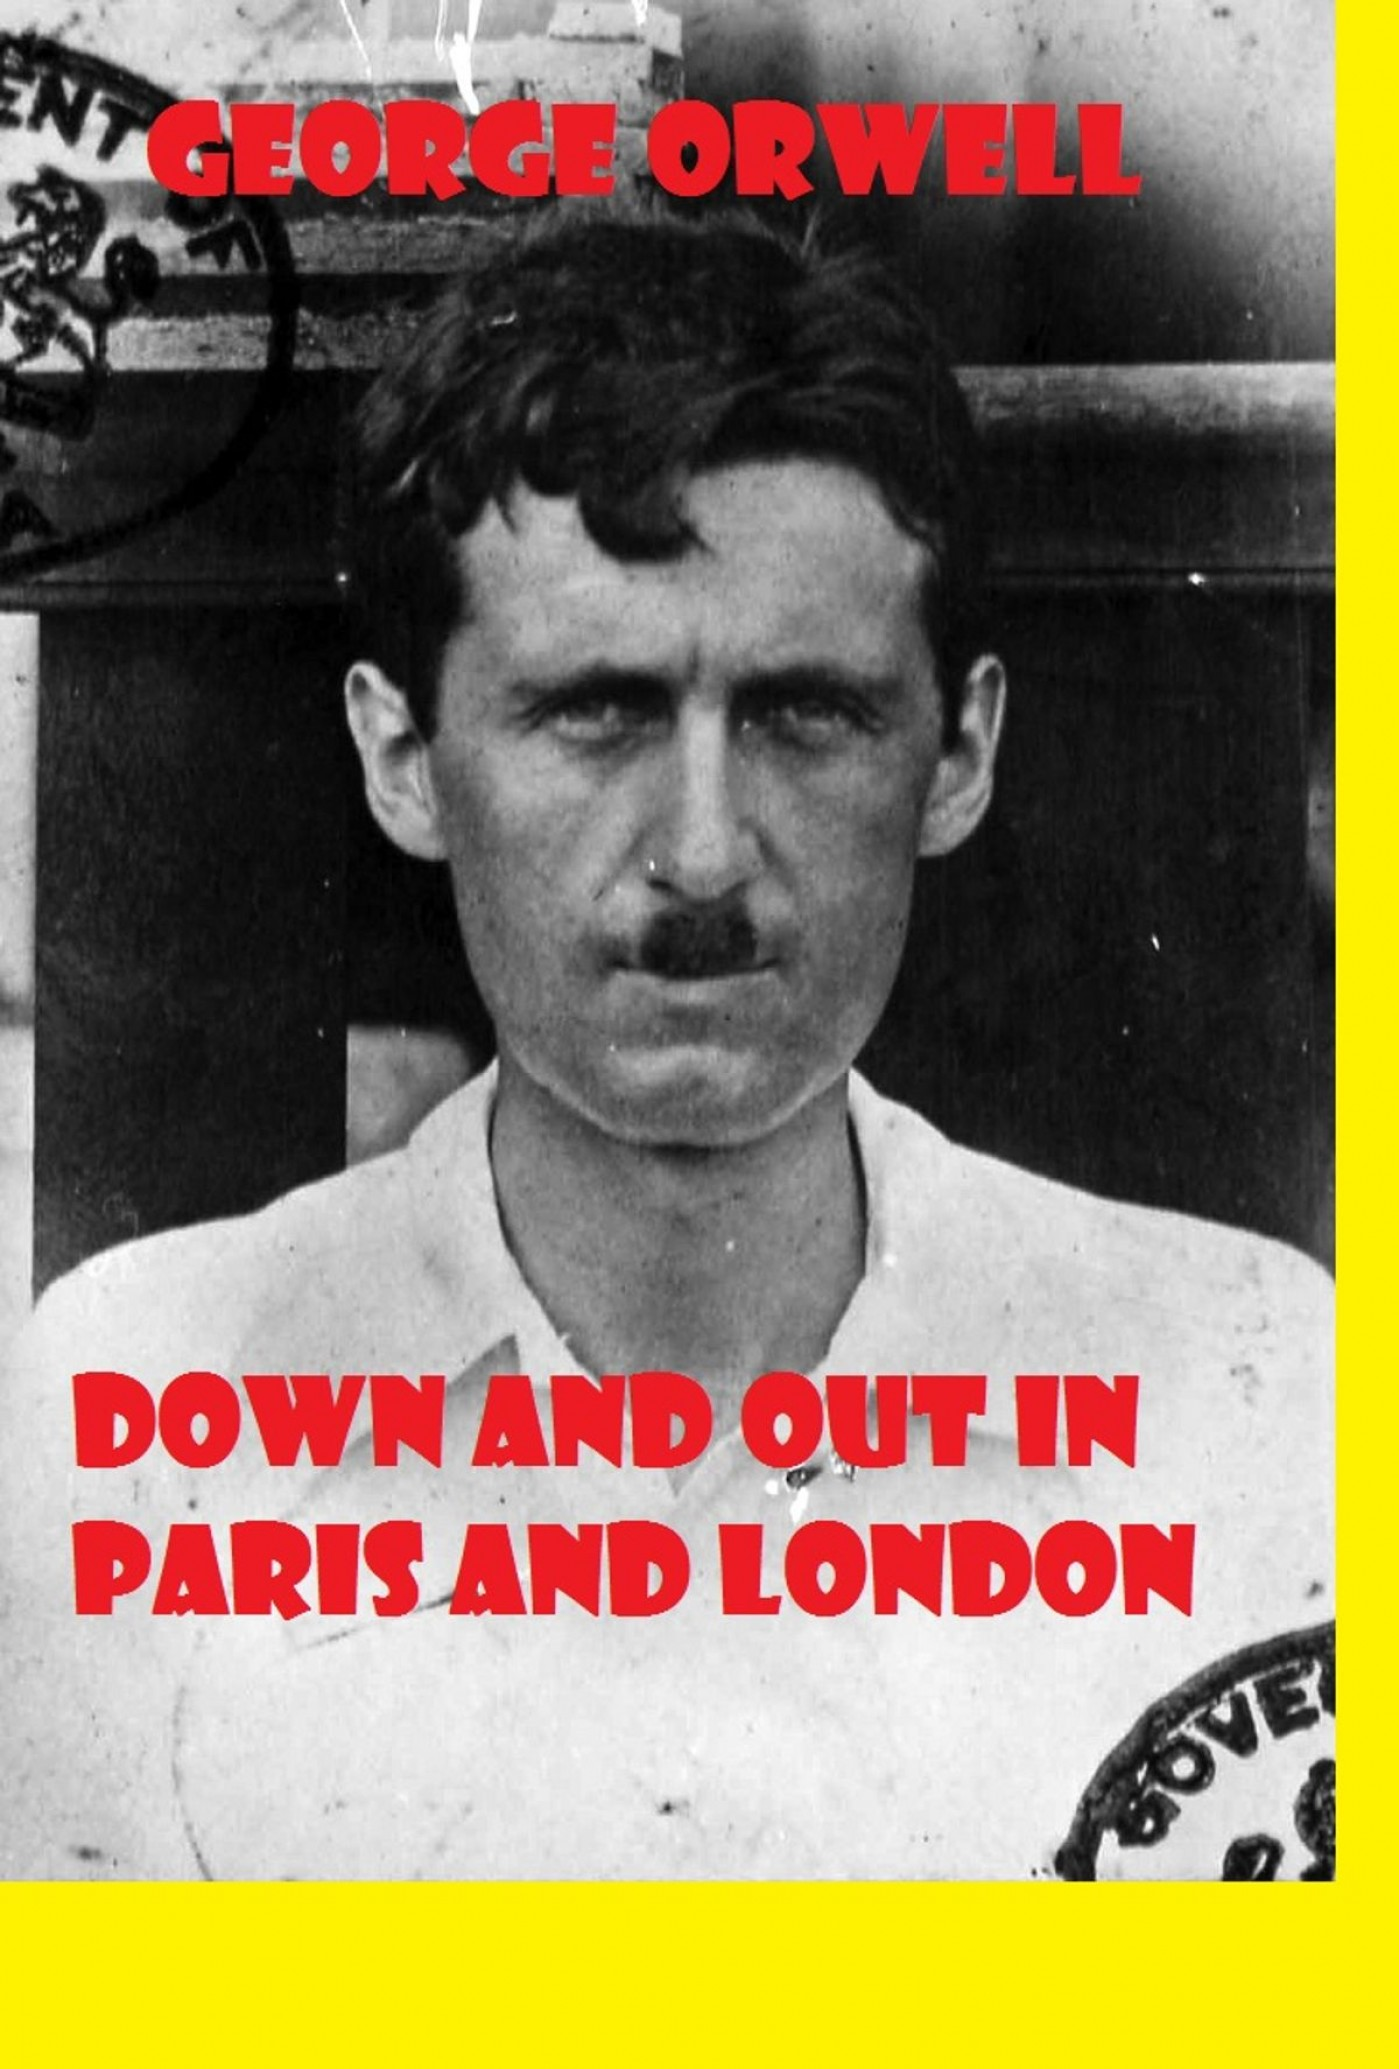 004 Down And Out In Paris London Essay Breathtaking 1400